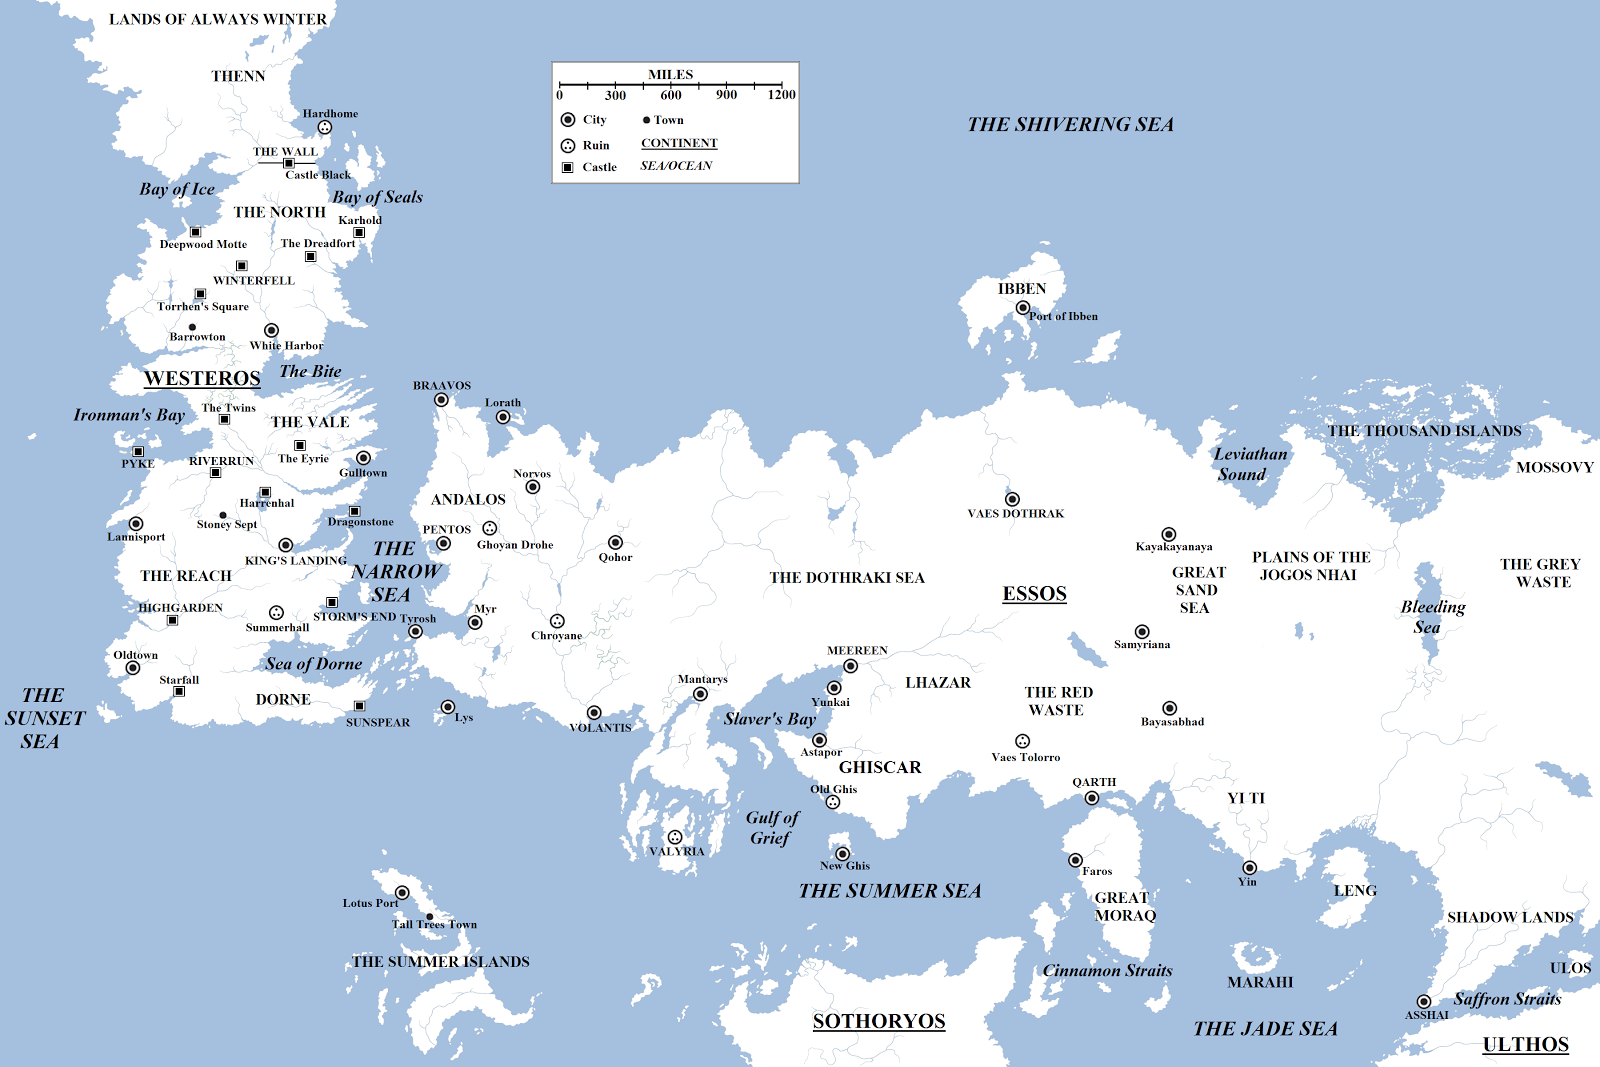 Ice_and_Fire_World_Map (1)